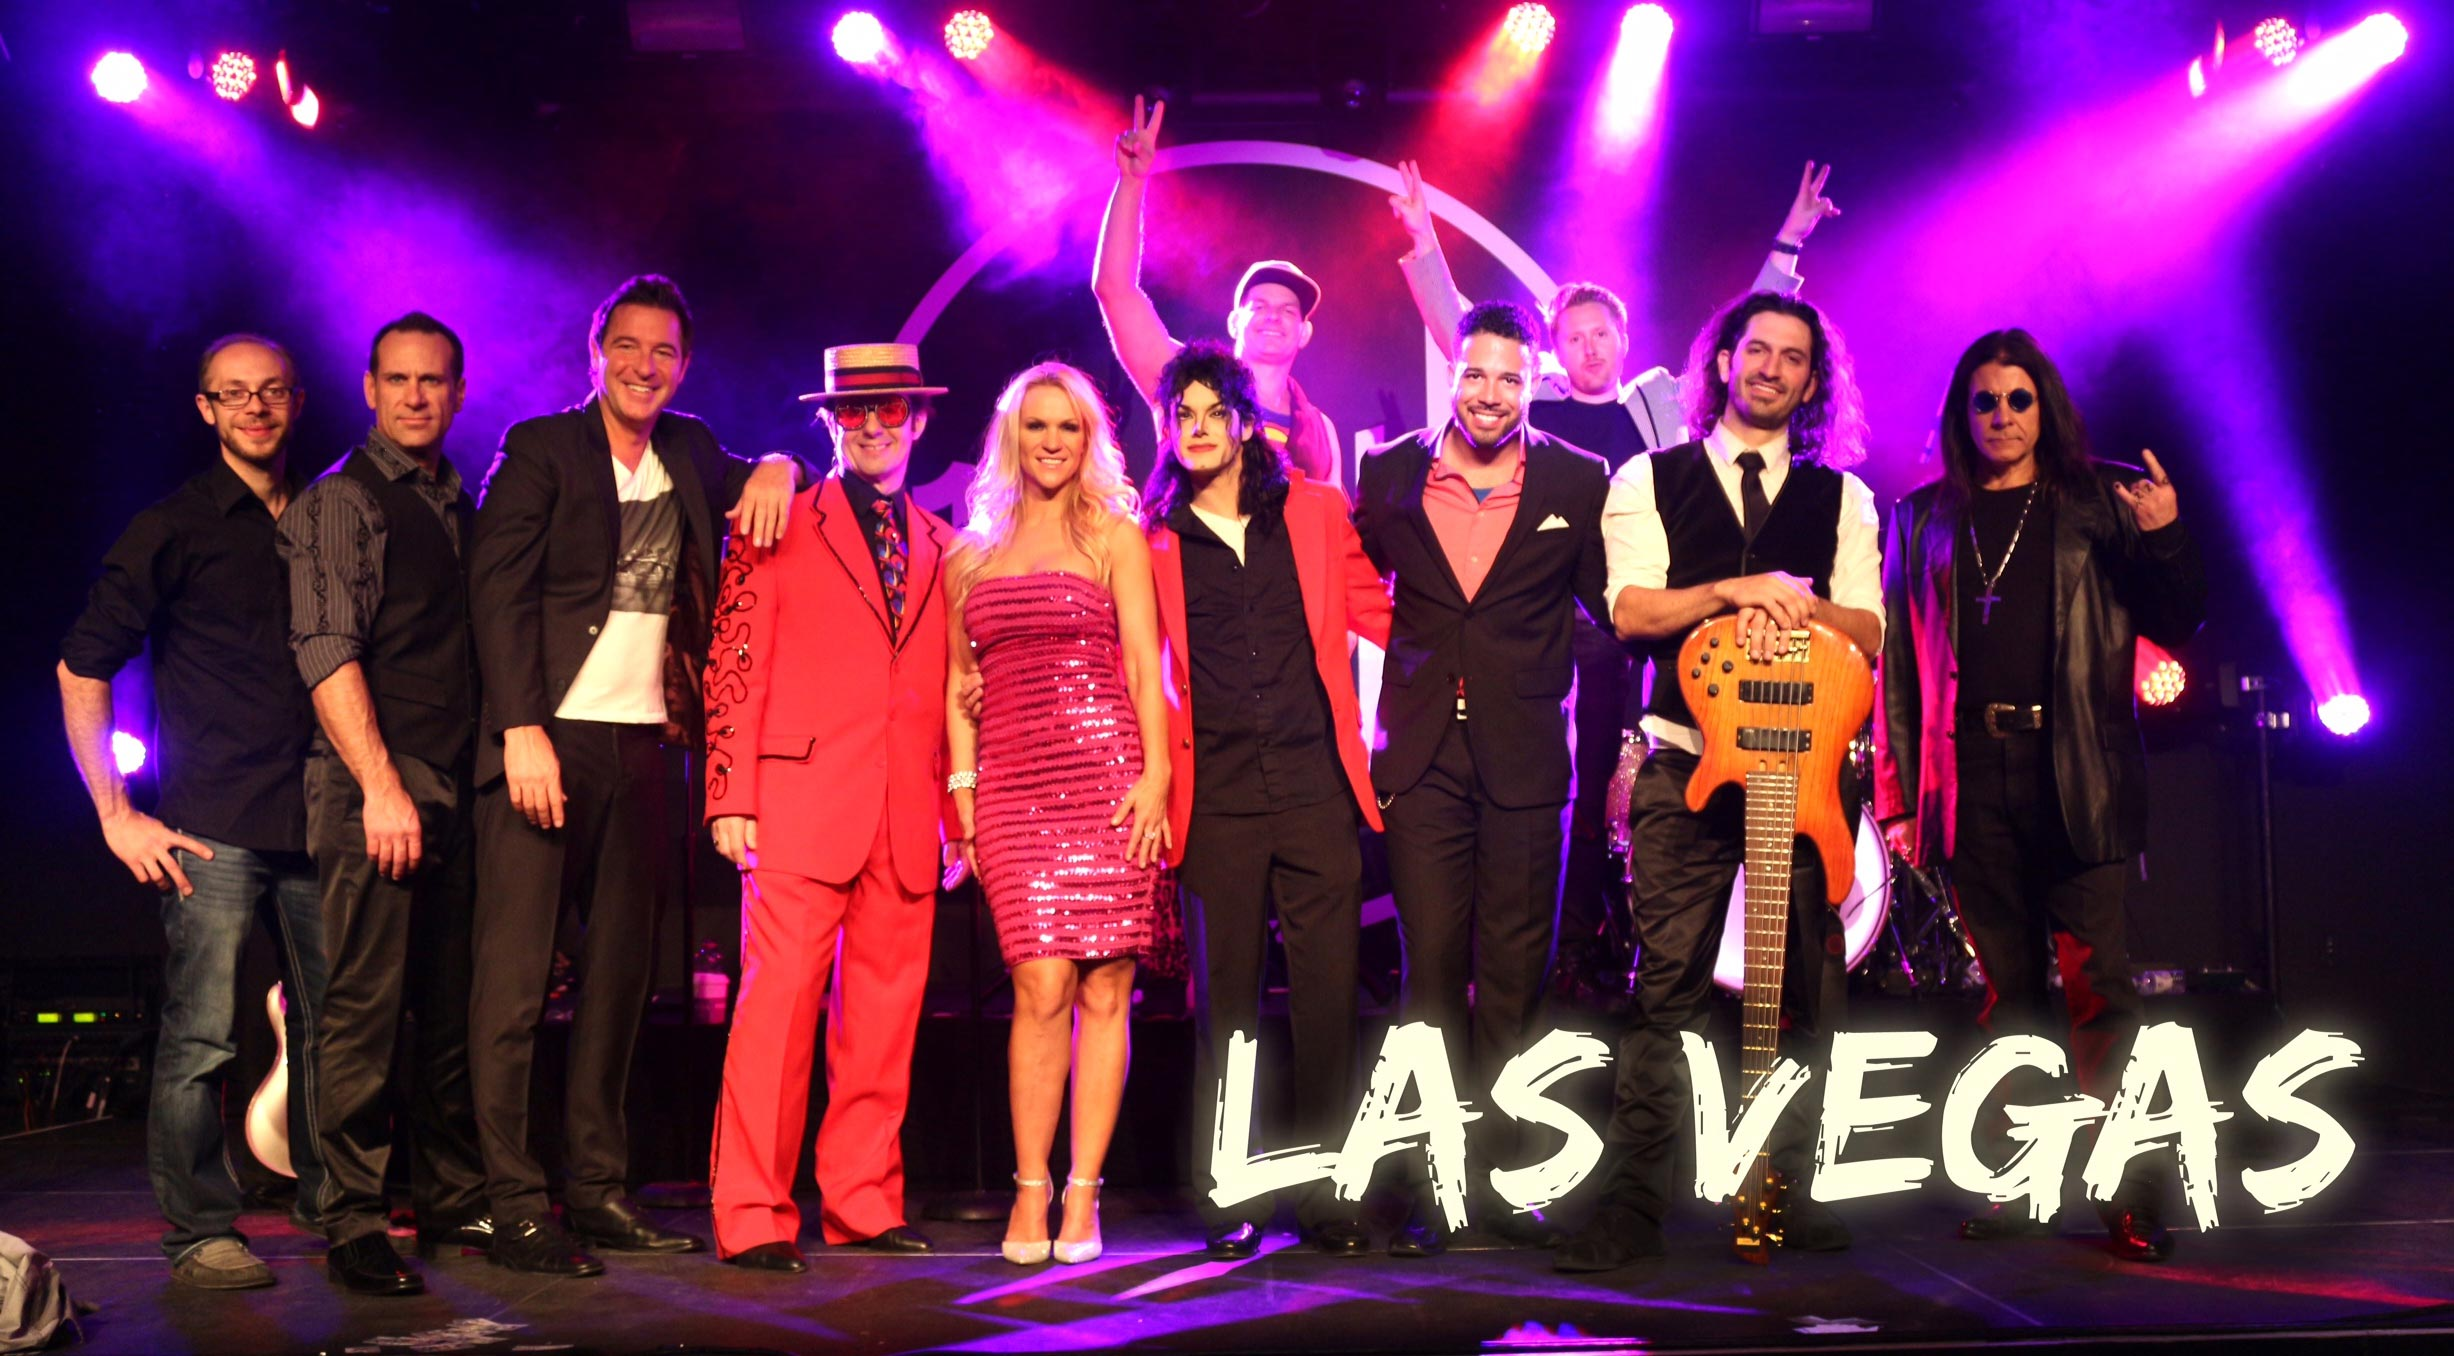 pc-cover-band-las-vegas